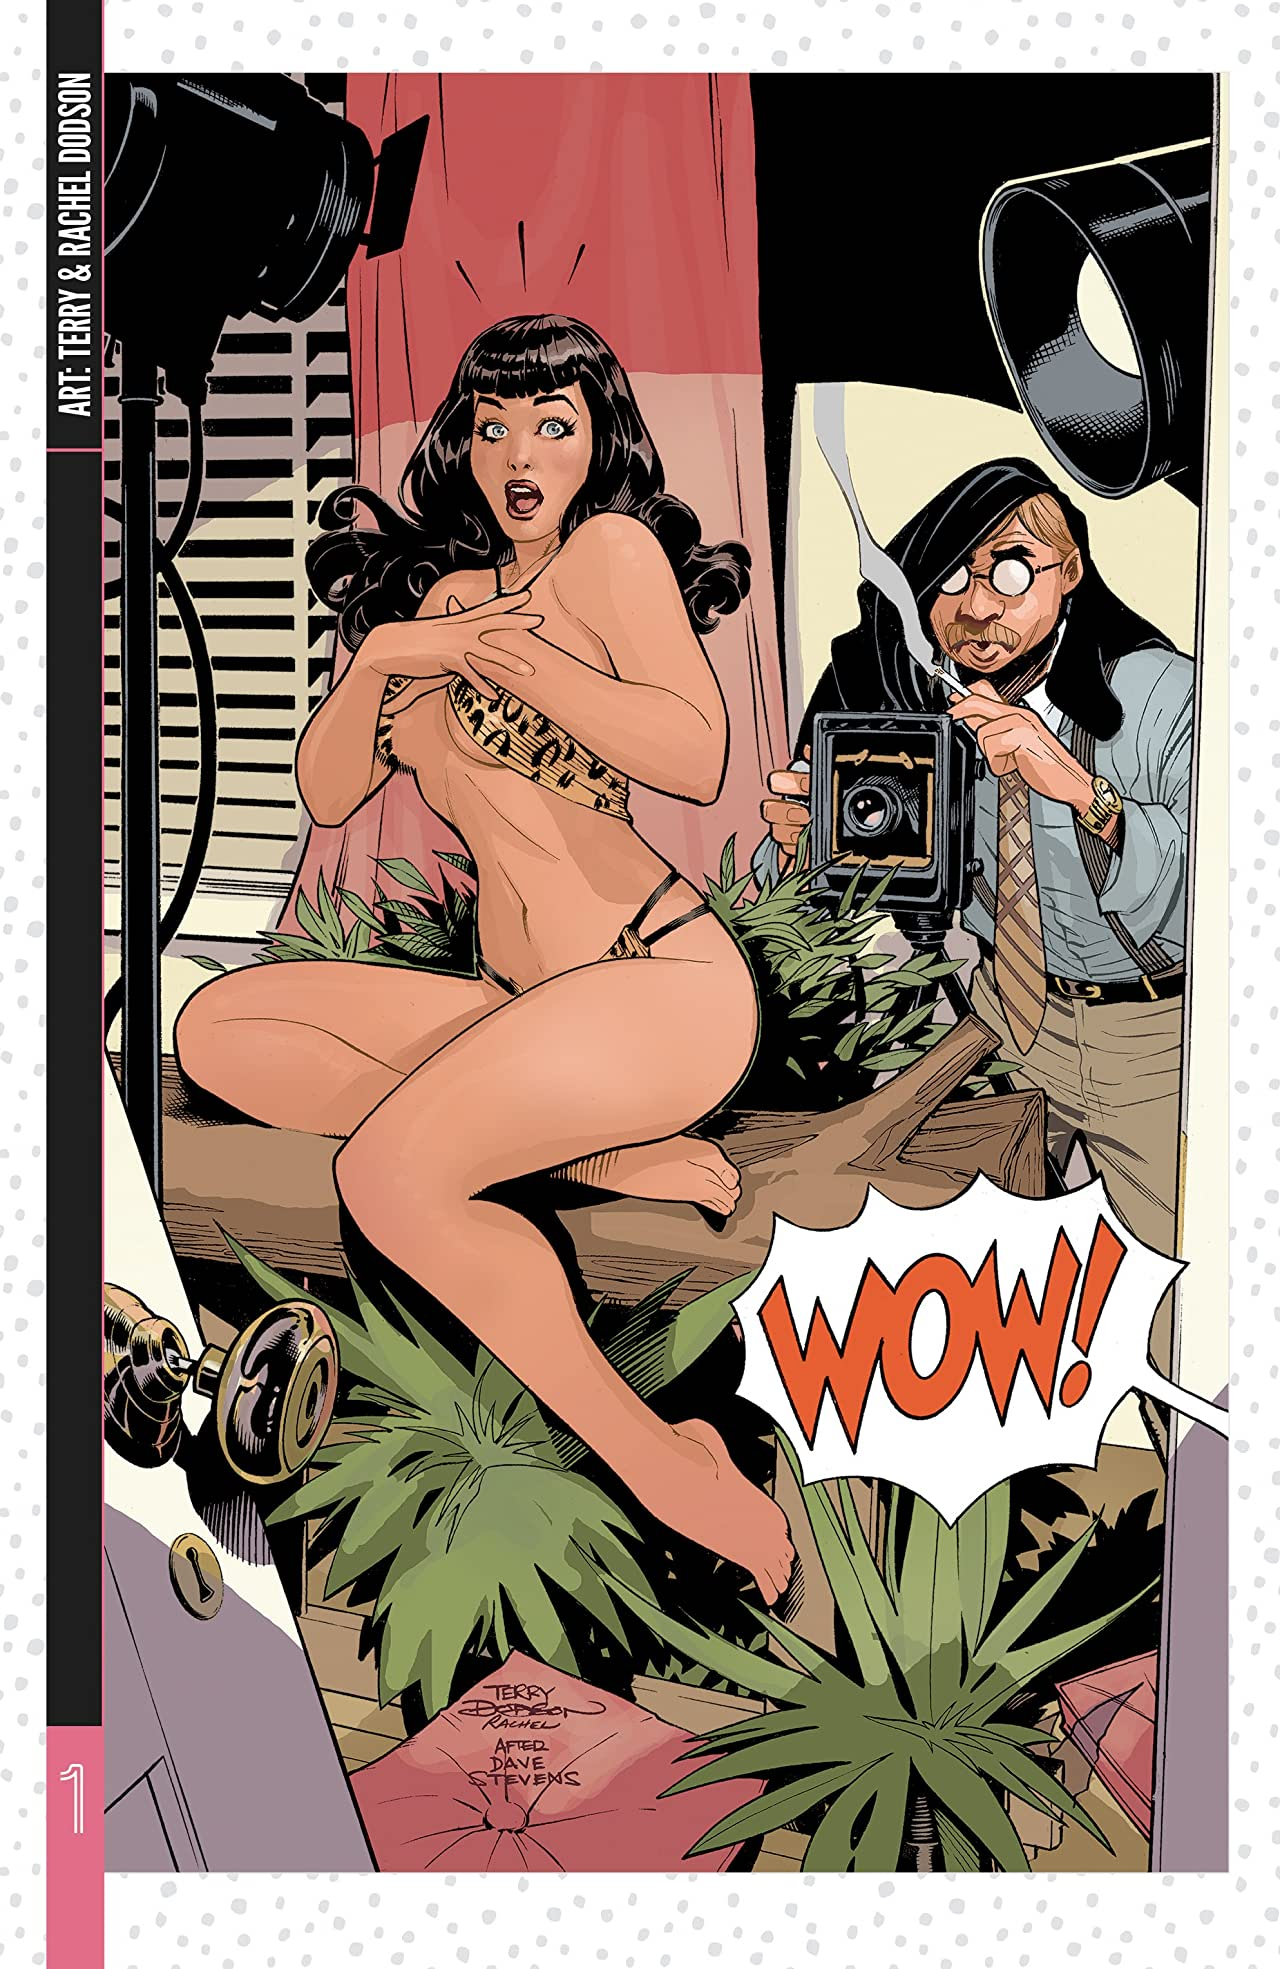 Bettie Page: The Dynamite Covers